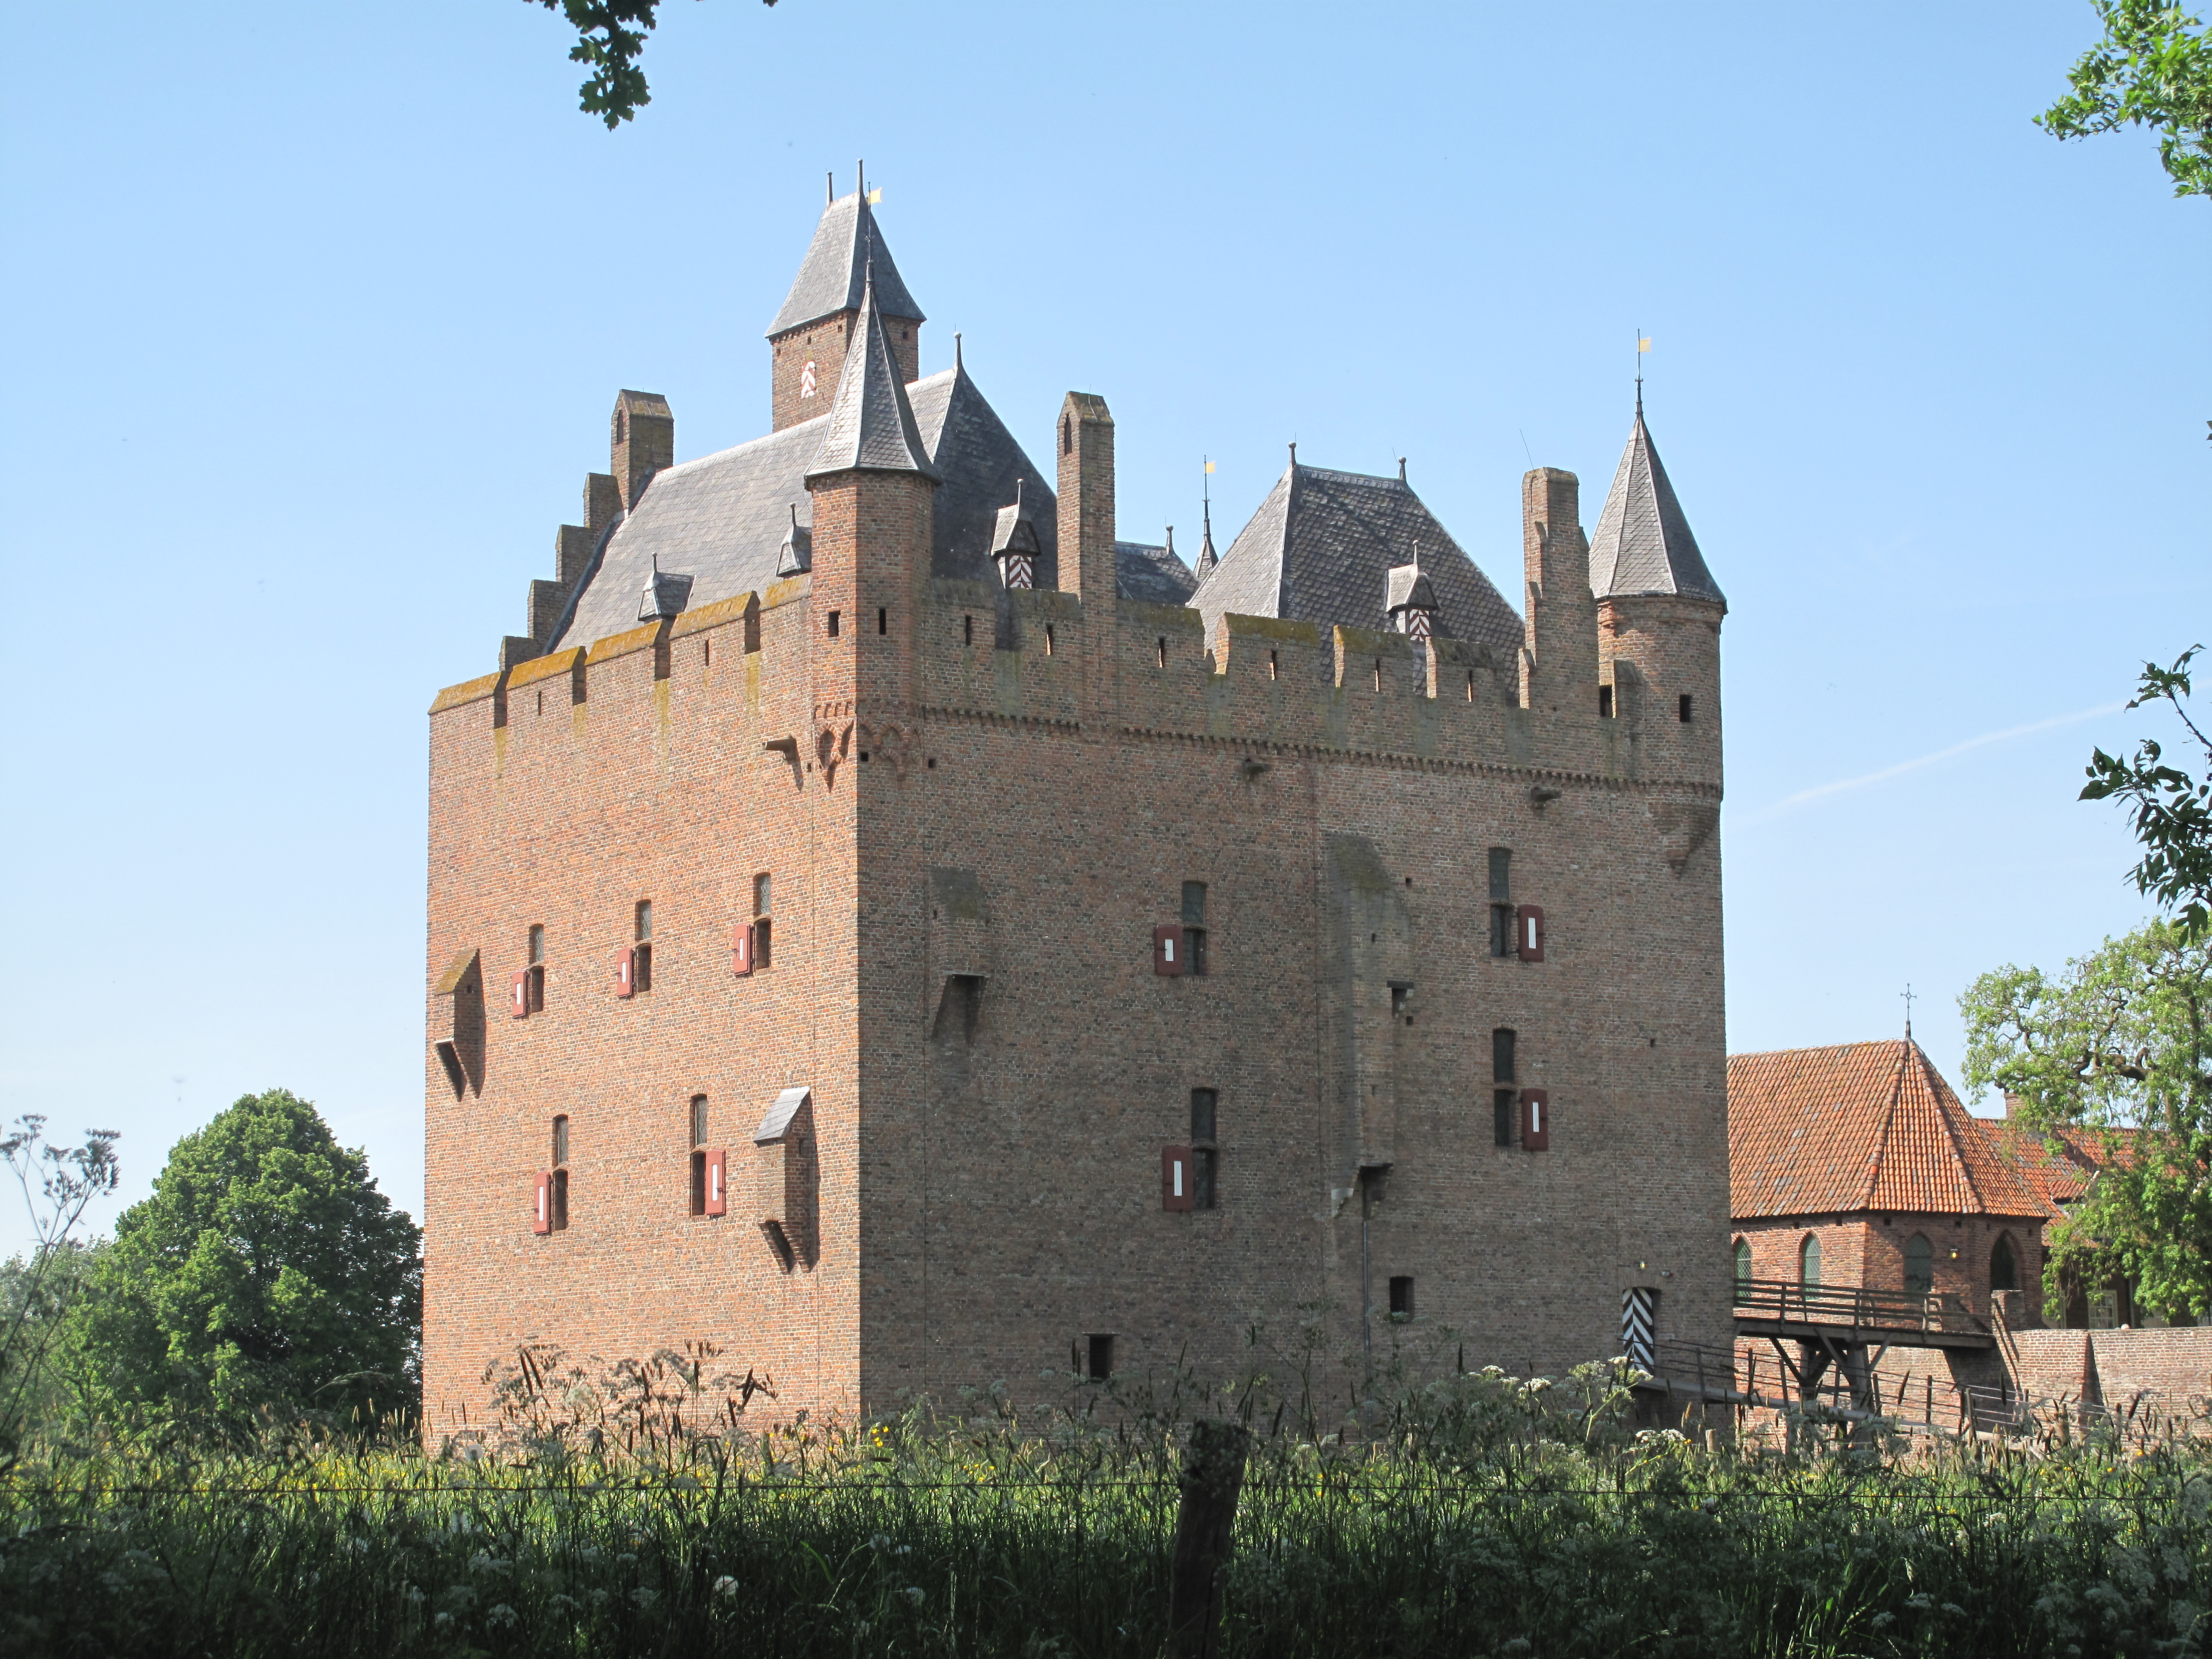 Datei Doornenburg, kasteel Doornenburg positie2 foto3 2011 05 11 15 34 jpg  u2013 Wikipedia